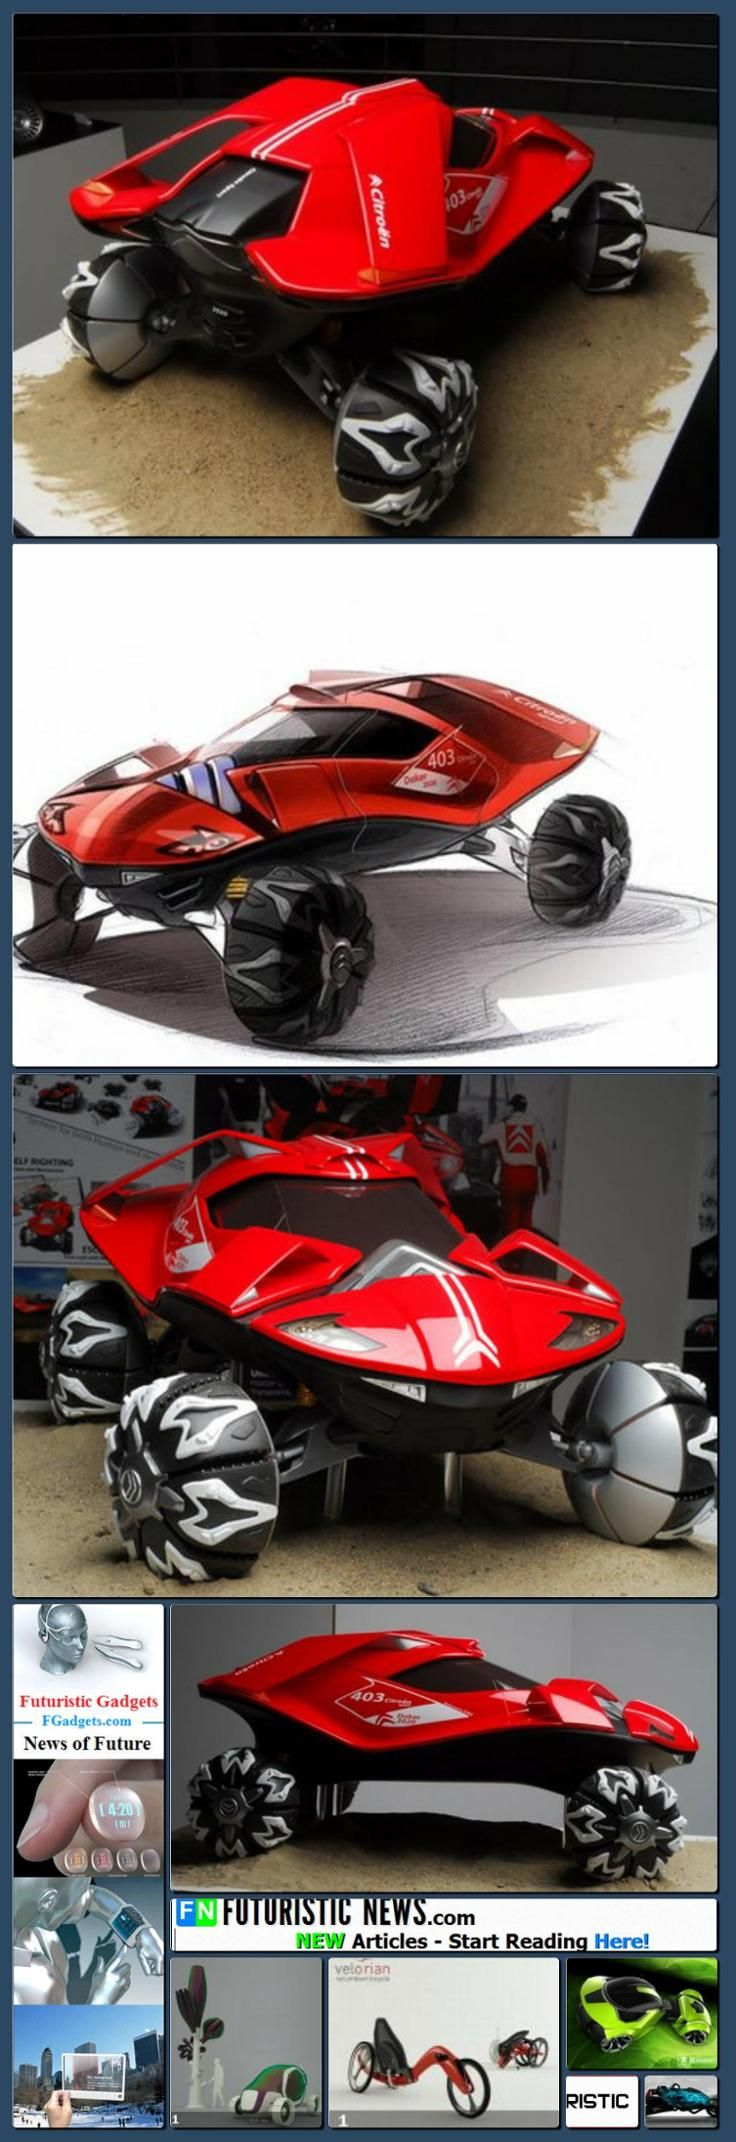 Likely cars of the future likely cars of the future http www - Future Transportation Citroen 2020 Dakar Rally Vehicle Concept By Chu Hyung Kwon Collage Made